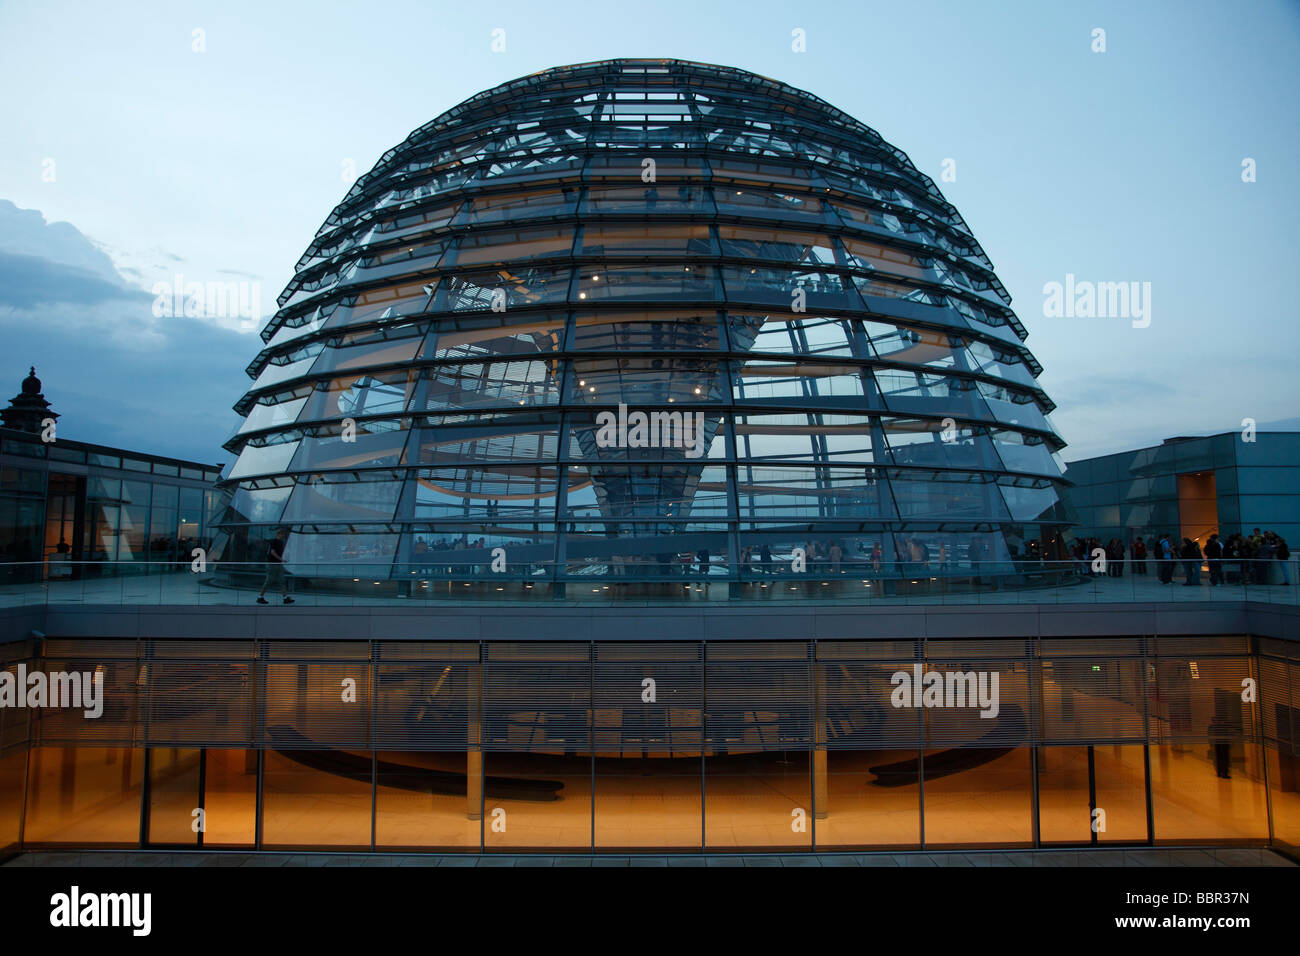 Norman Foster Germany Berlin Reichstag Glass Dome Cupola Norman Foster Architect